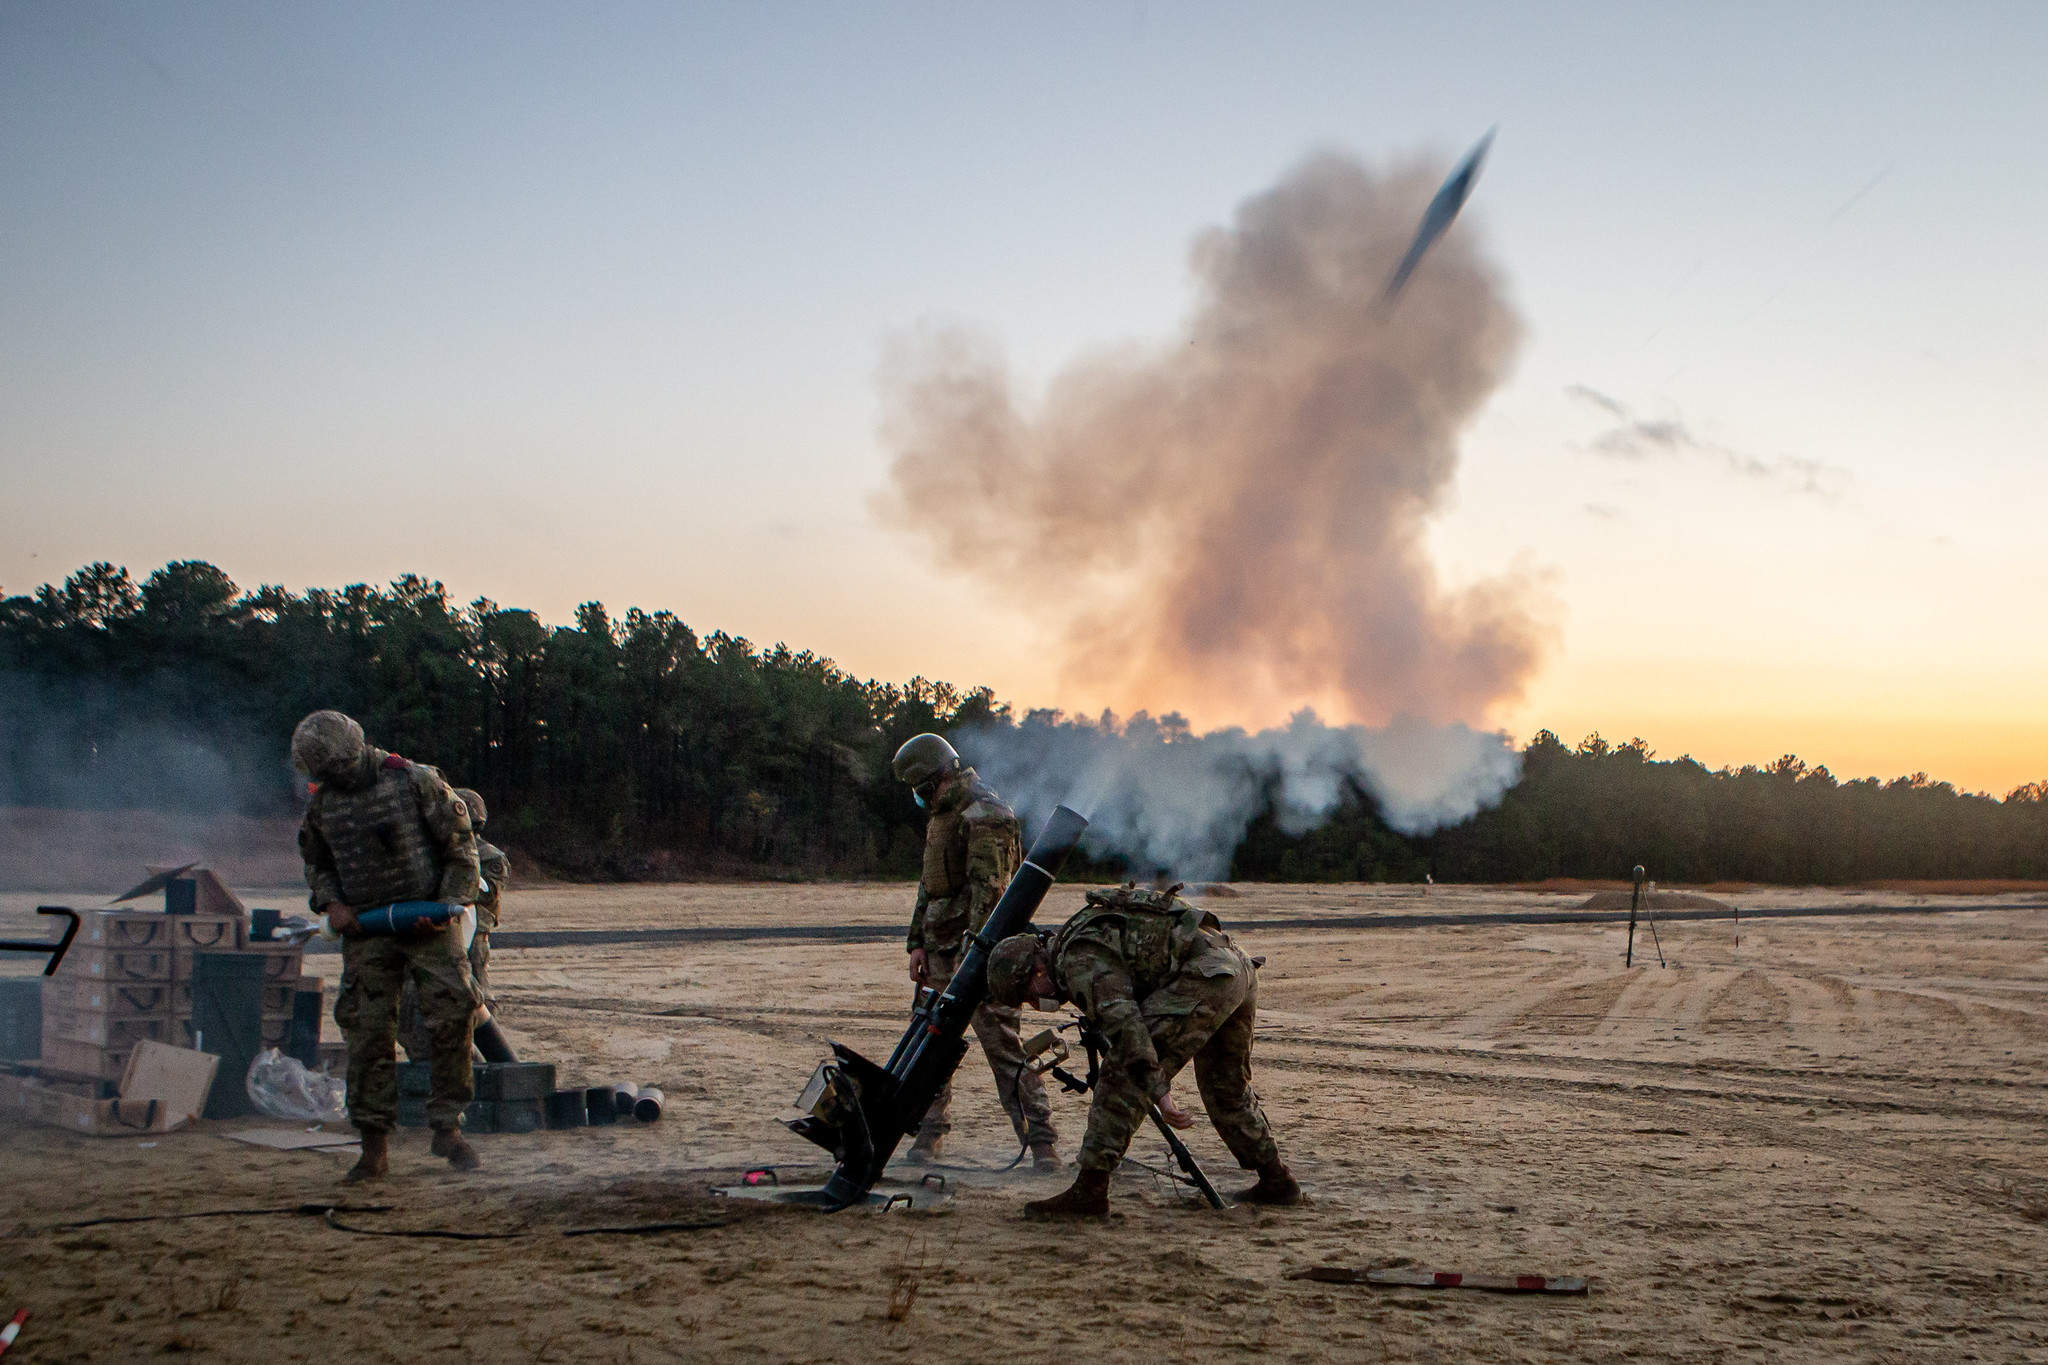 Soldiers with the 2nd Battalion, 113th Infantry Regiment, New Jersey Army National Guard, fire the 120mm mortar system on Joint Base McGuire-Dix-Lakehurst, N.J., Nov. 13, 2020. (Spc. Michael Schwenk/Army National Guard)